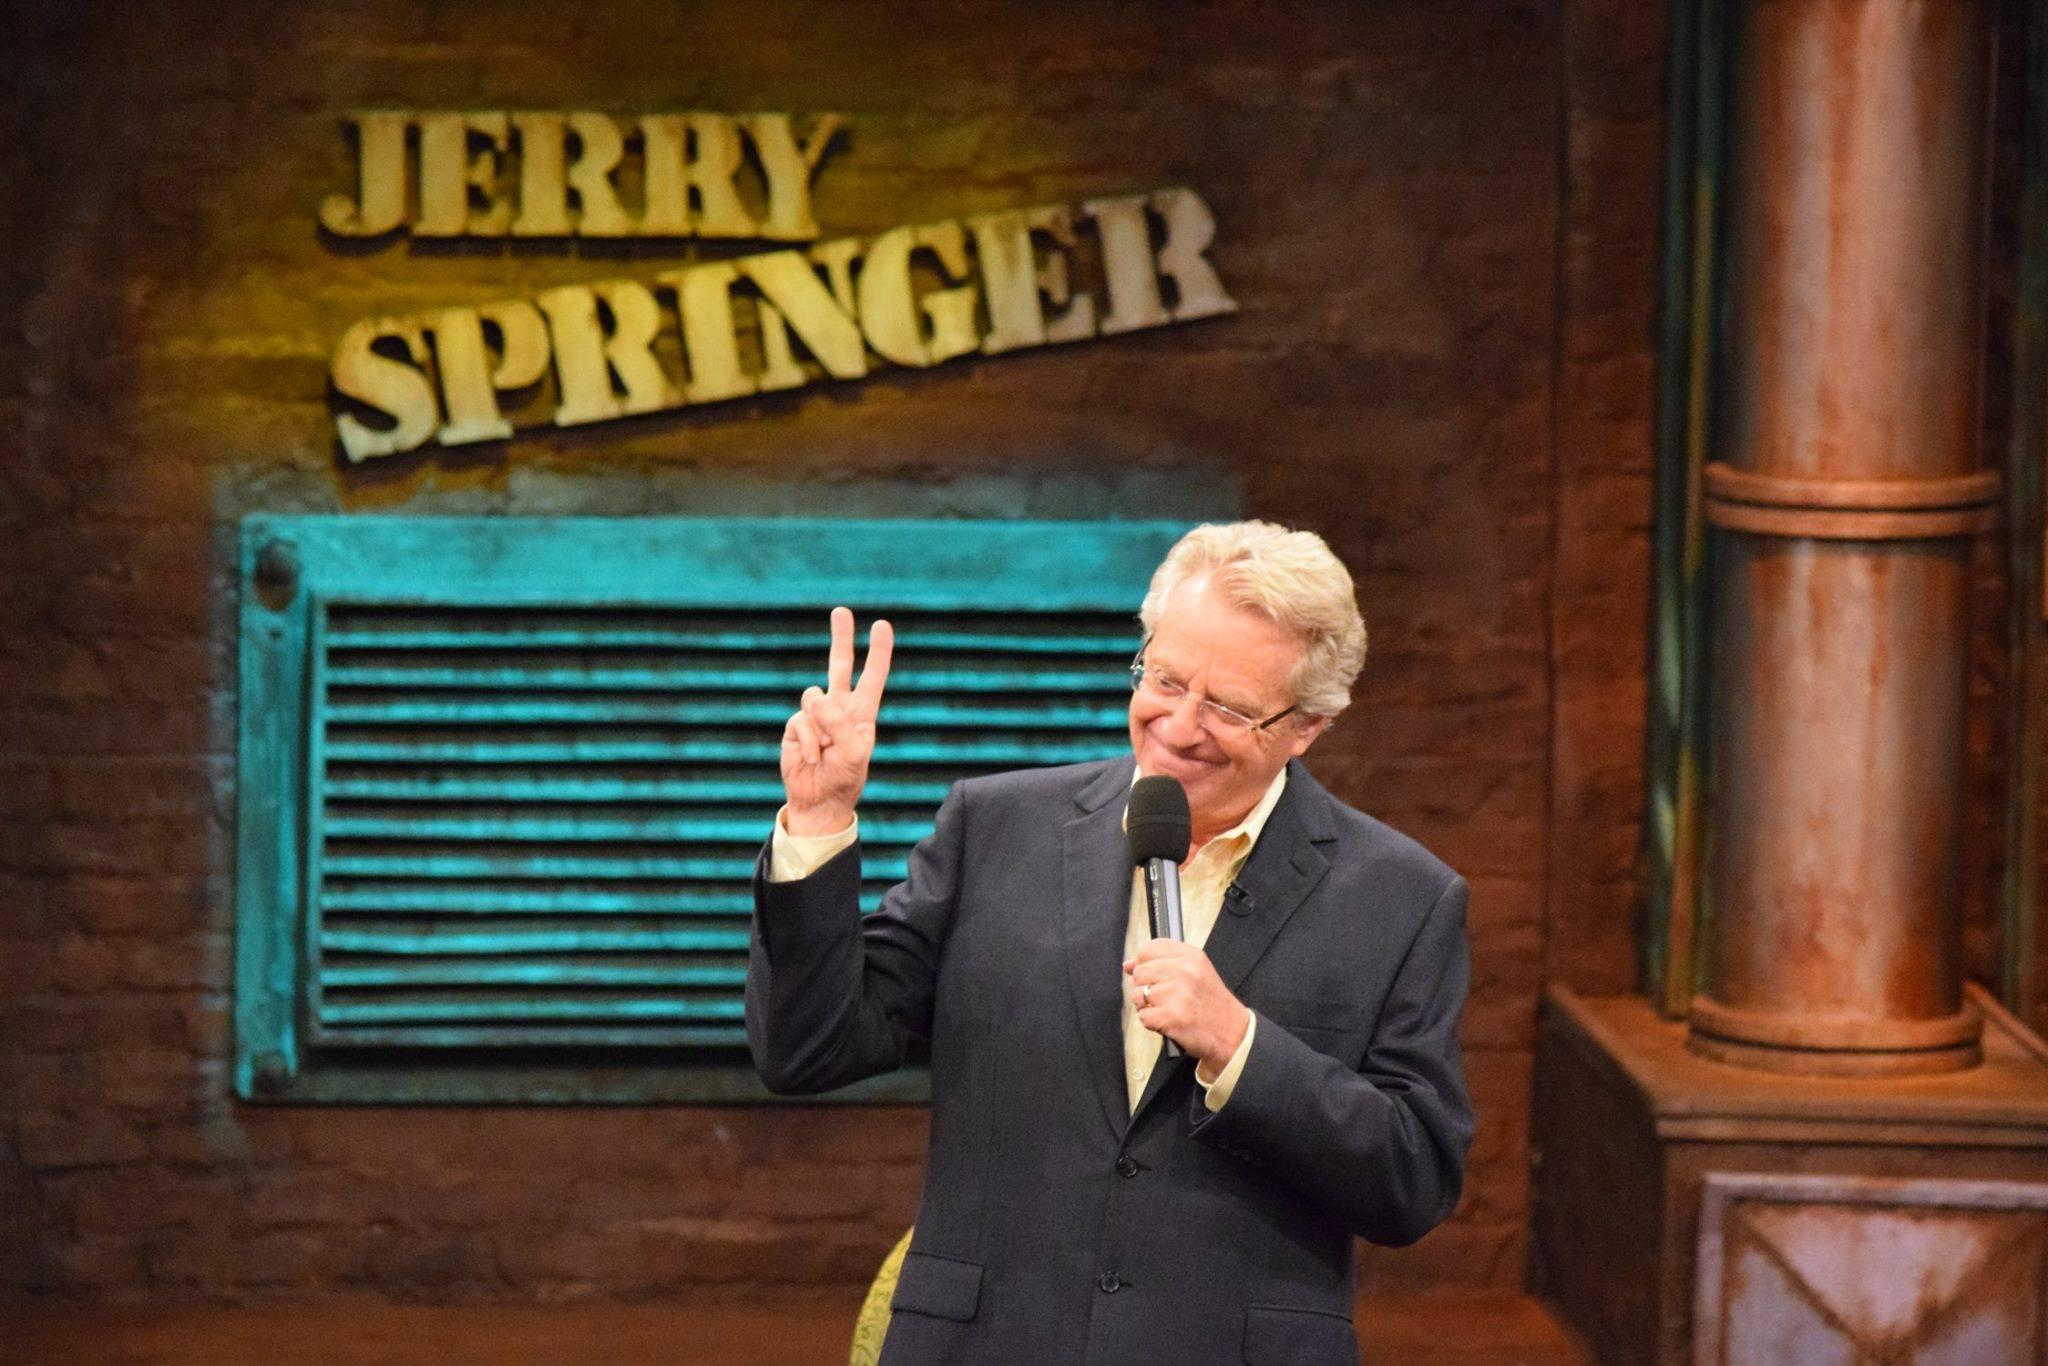 Jerry Springer announces decision on running for OH governor